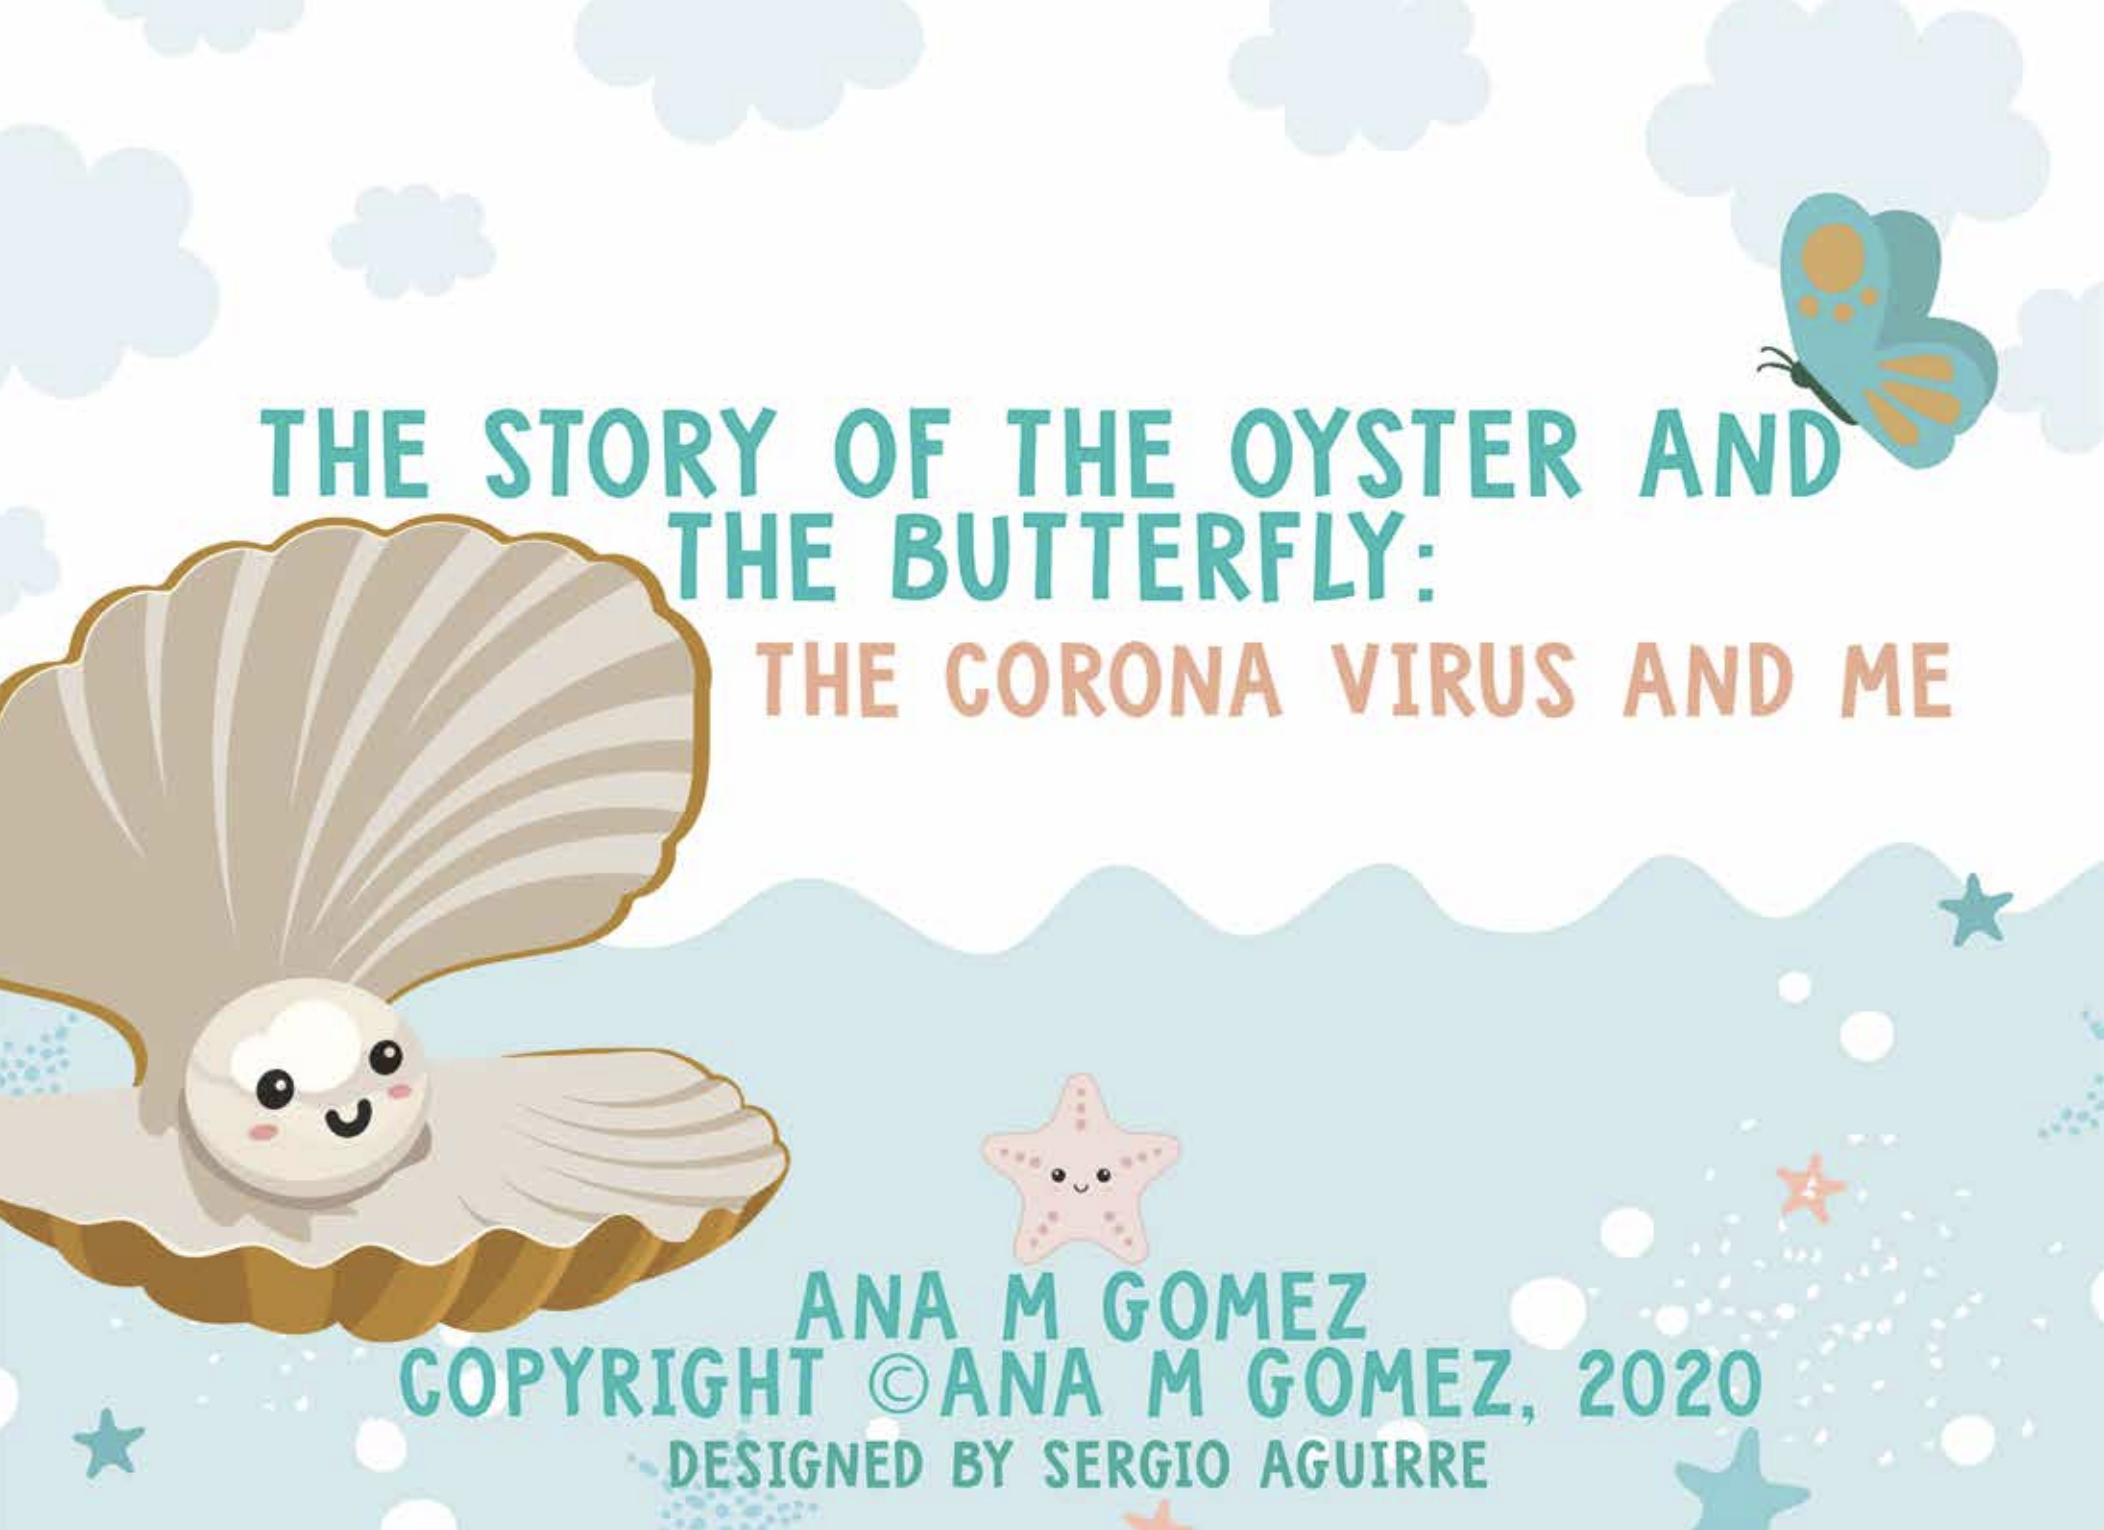 The Story of the Oyster and the Butterfly: The Coronavirus and Me